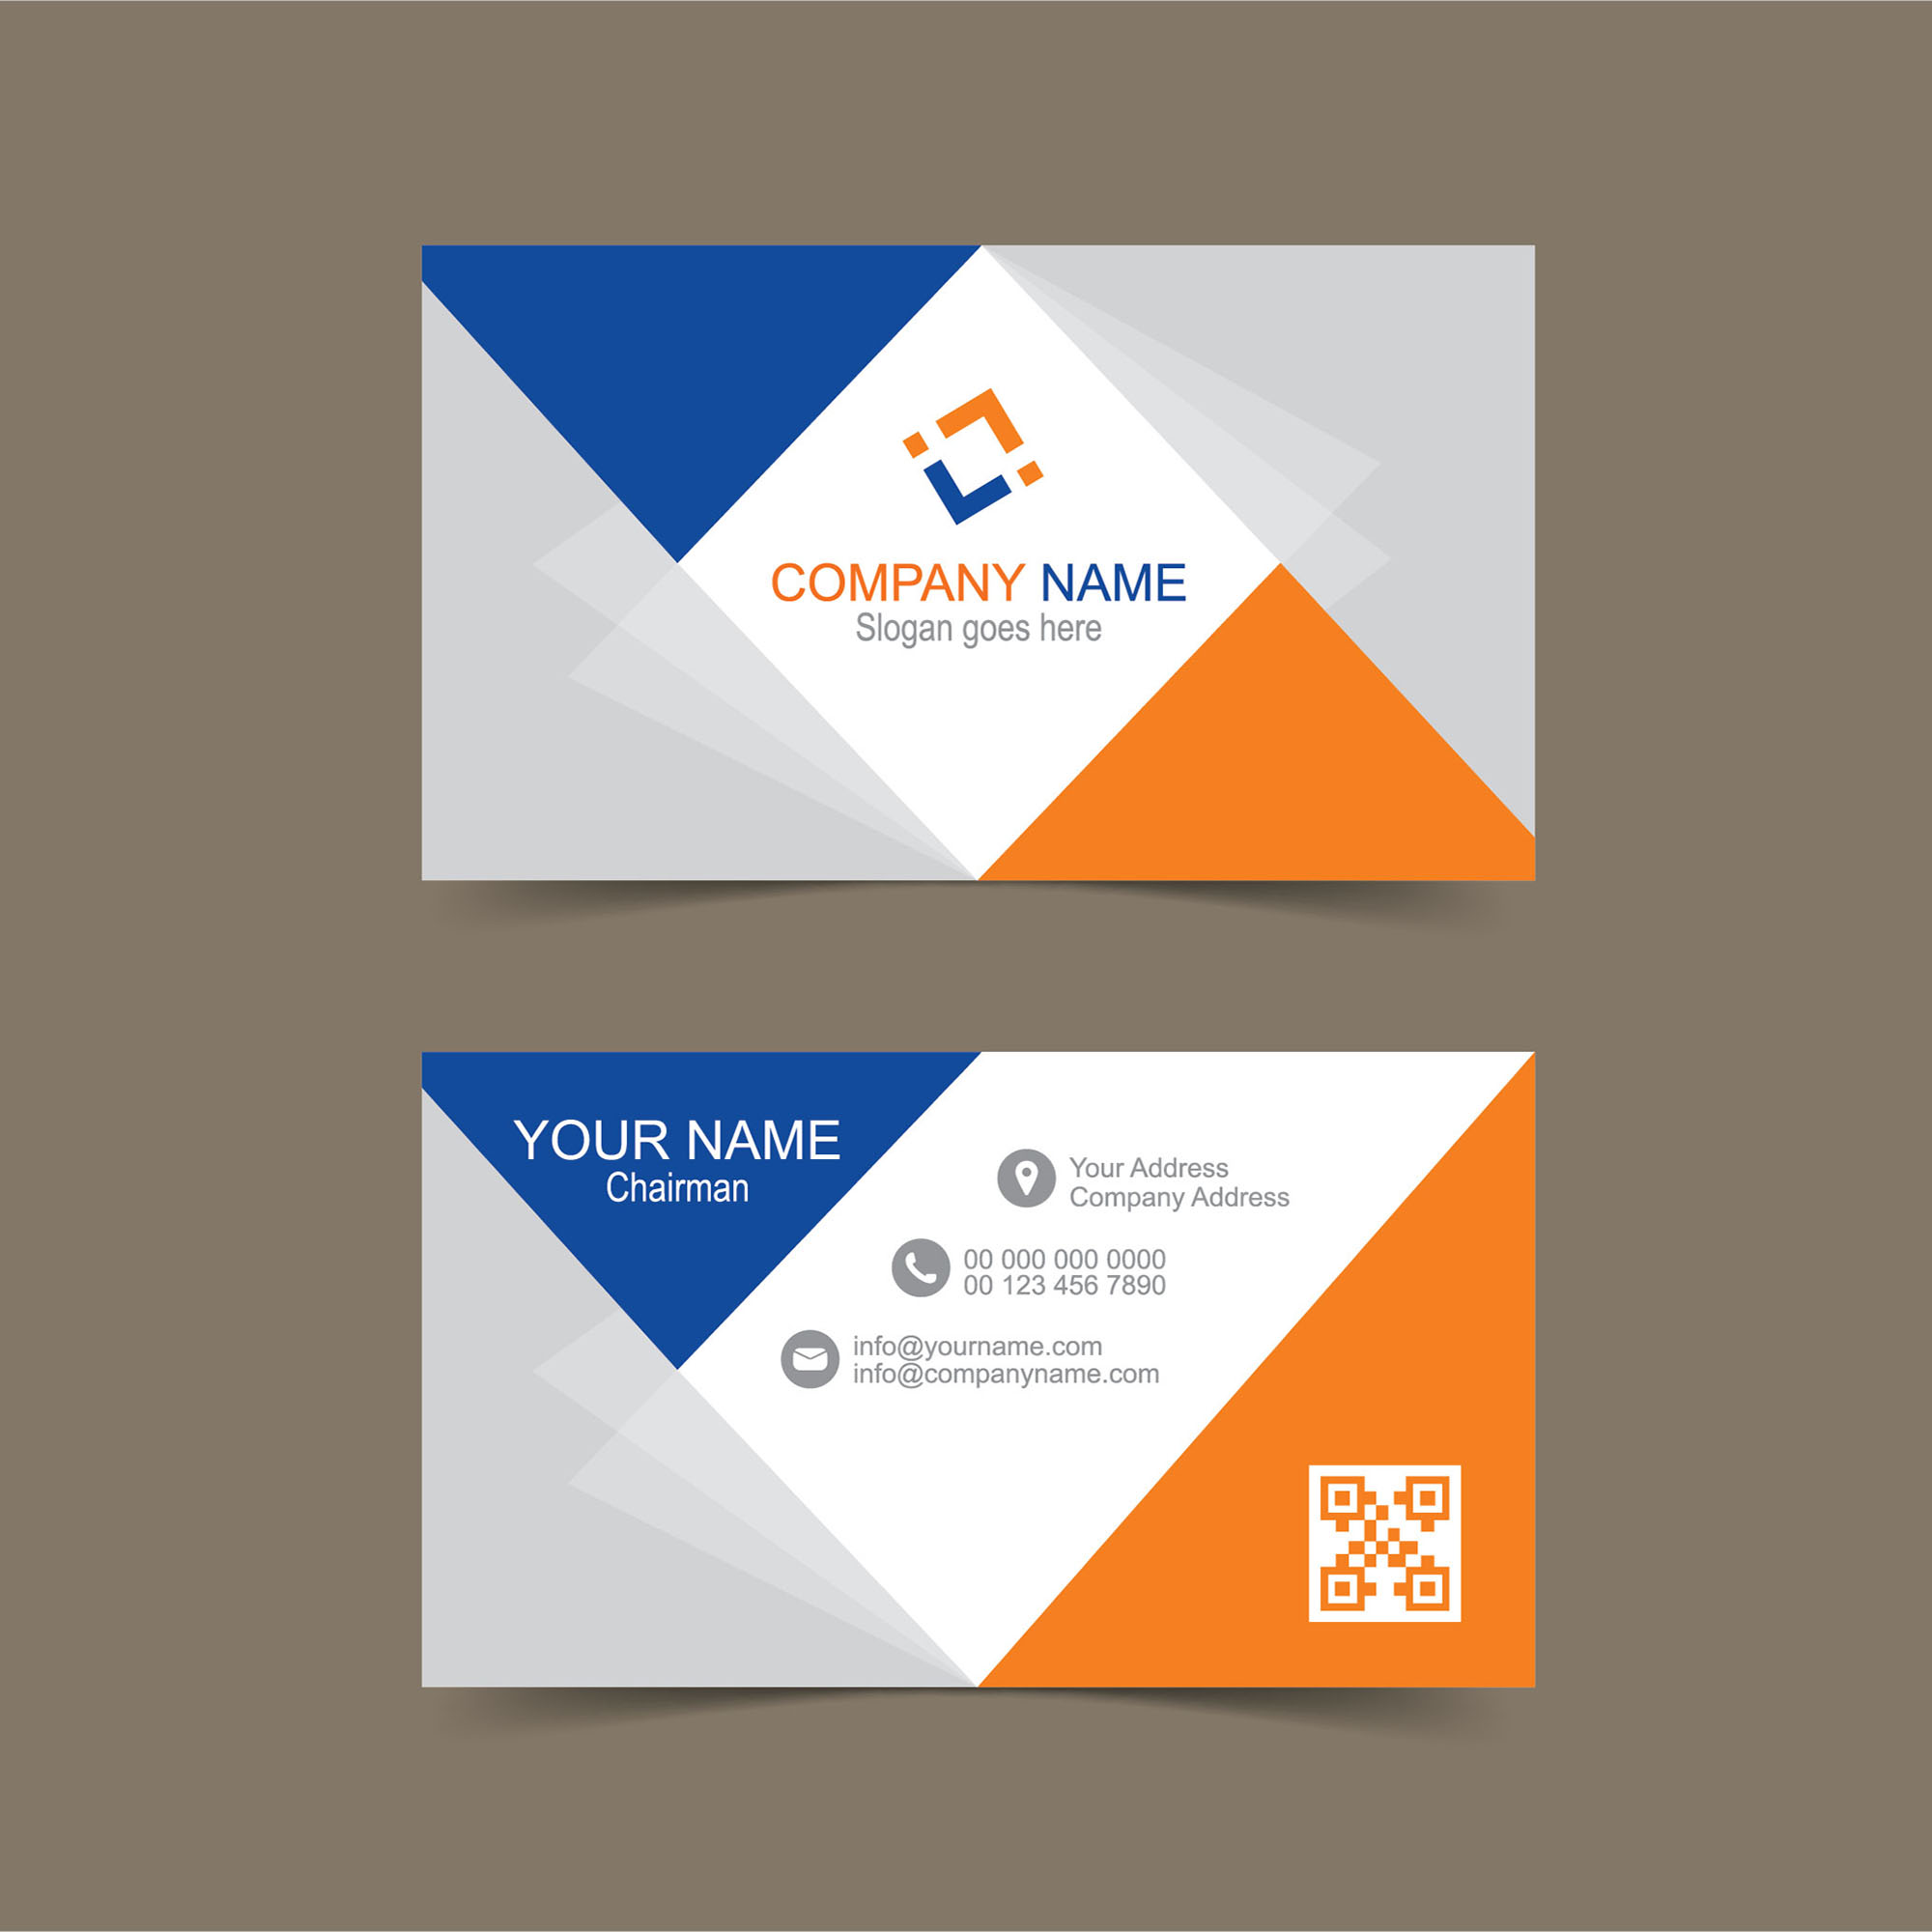 Free business card template for Illustrator - Wisxi.com